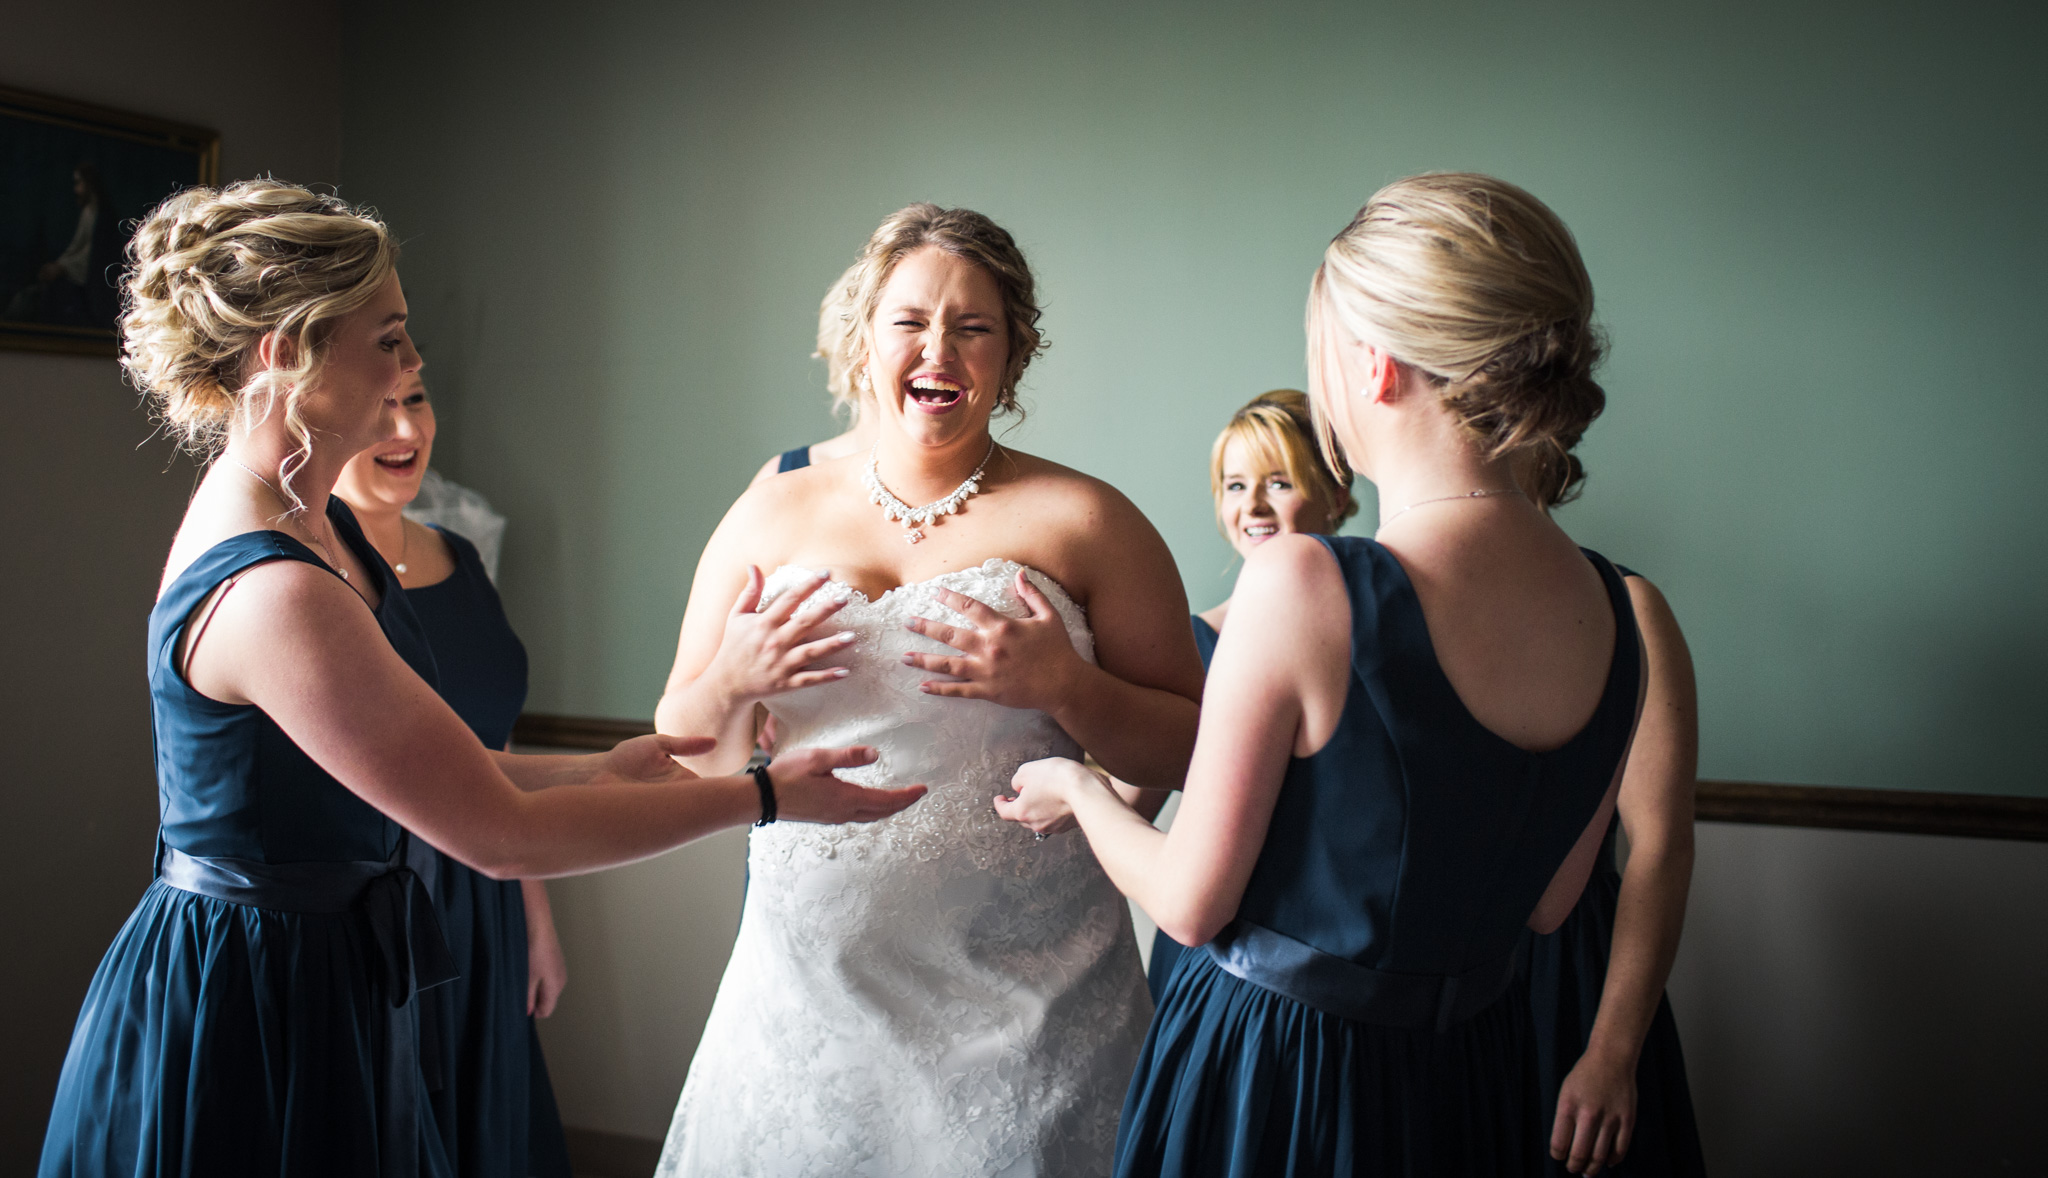 Zibell Spring Wedding, Bride and Groom, Powerful, Connected, Exploration, Laura Duggleby Photography -61.JPG